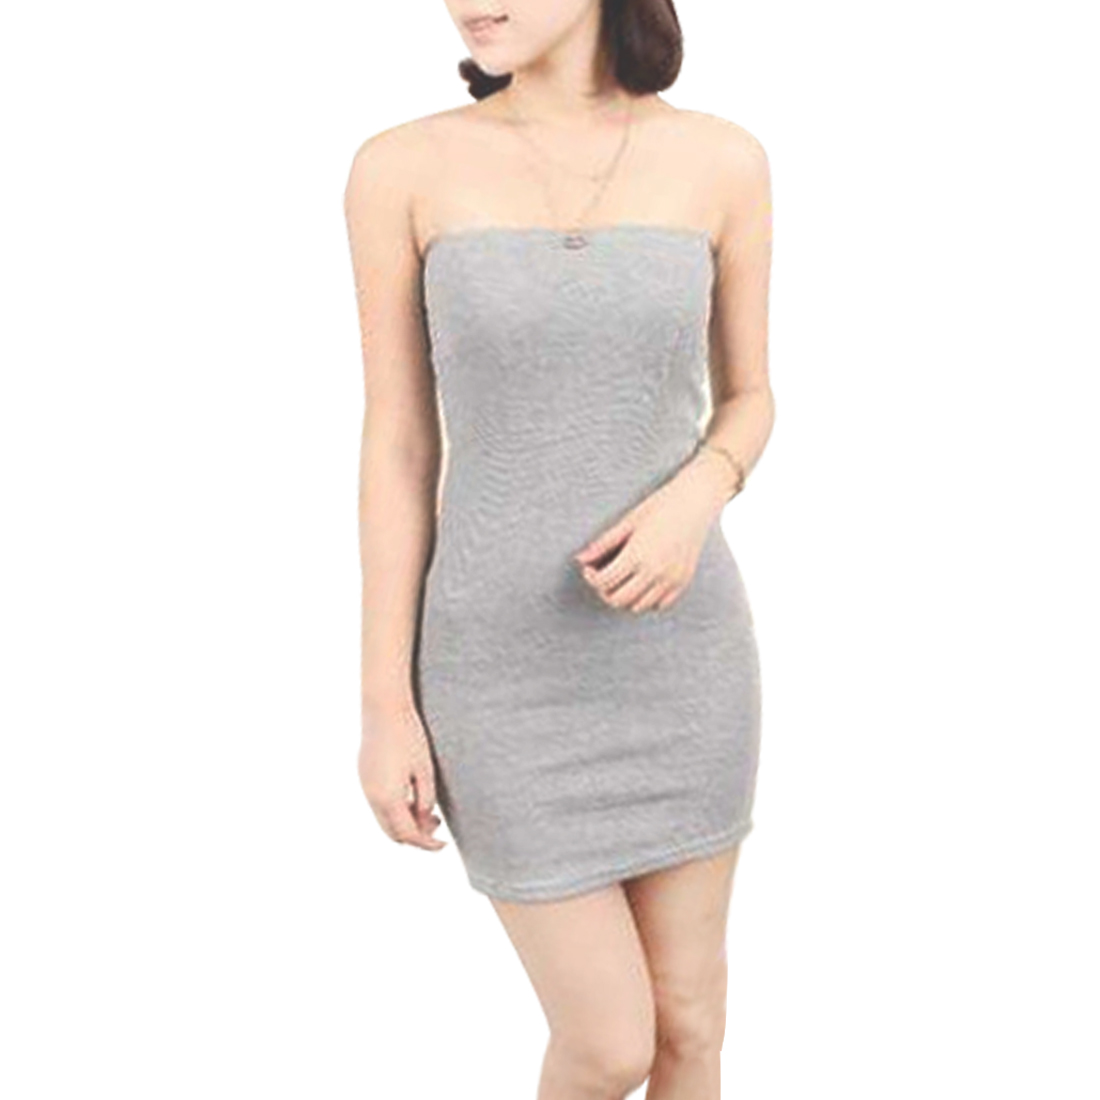 Women Strapless Pure Gray Tube Skinny Stretchy Mini Dress XS